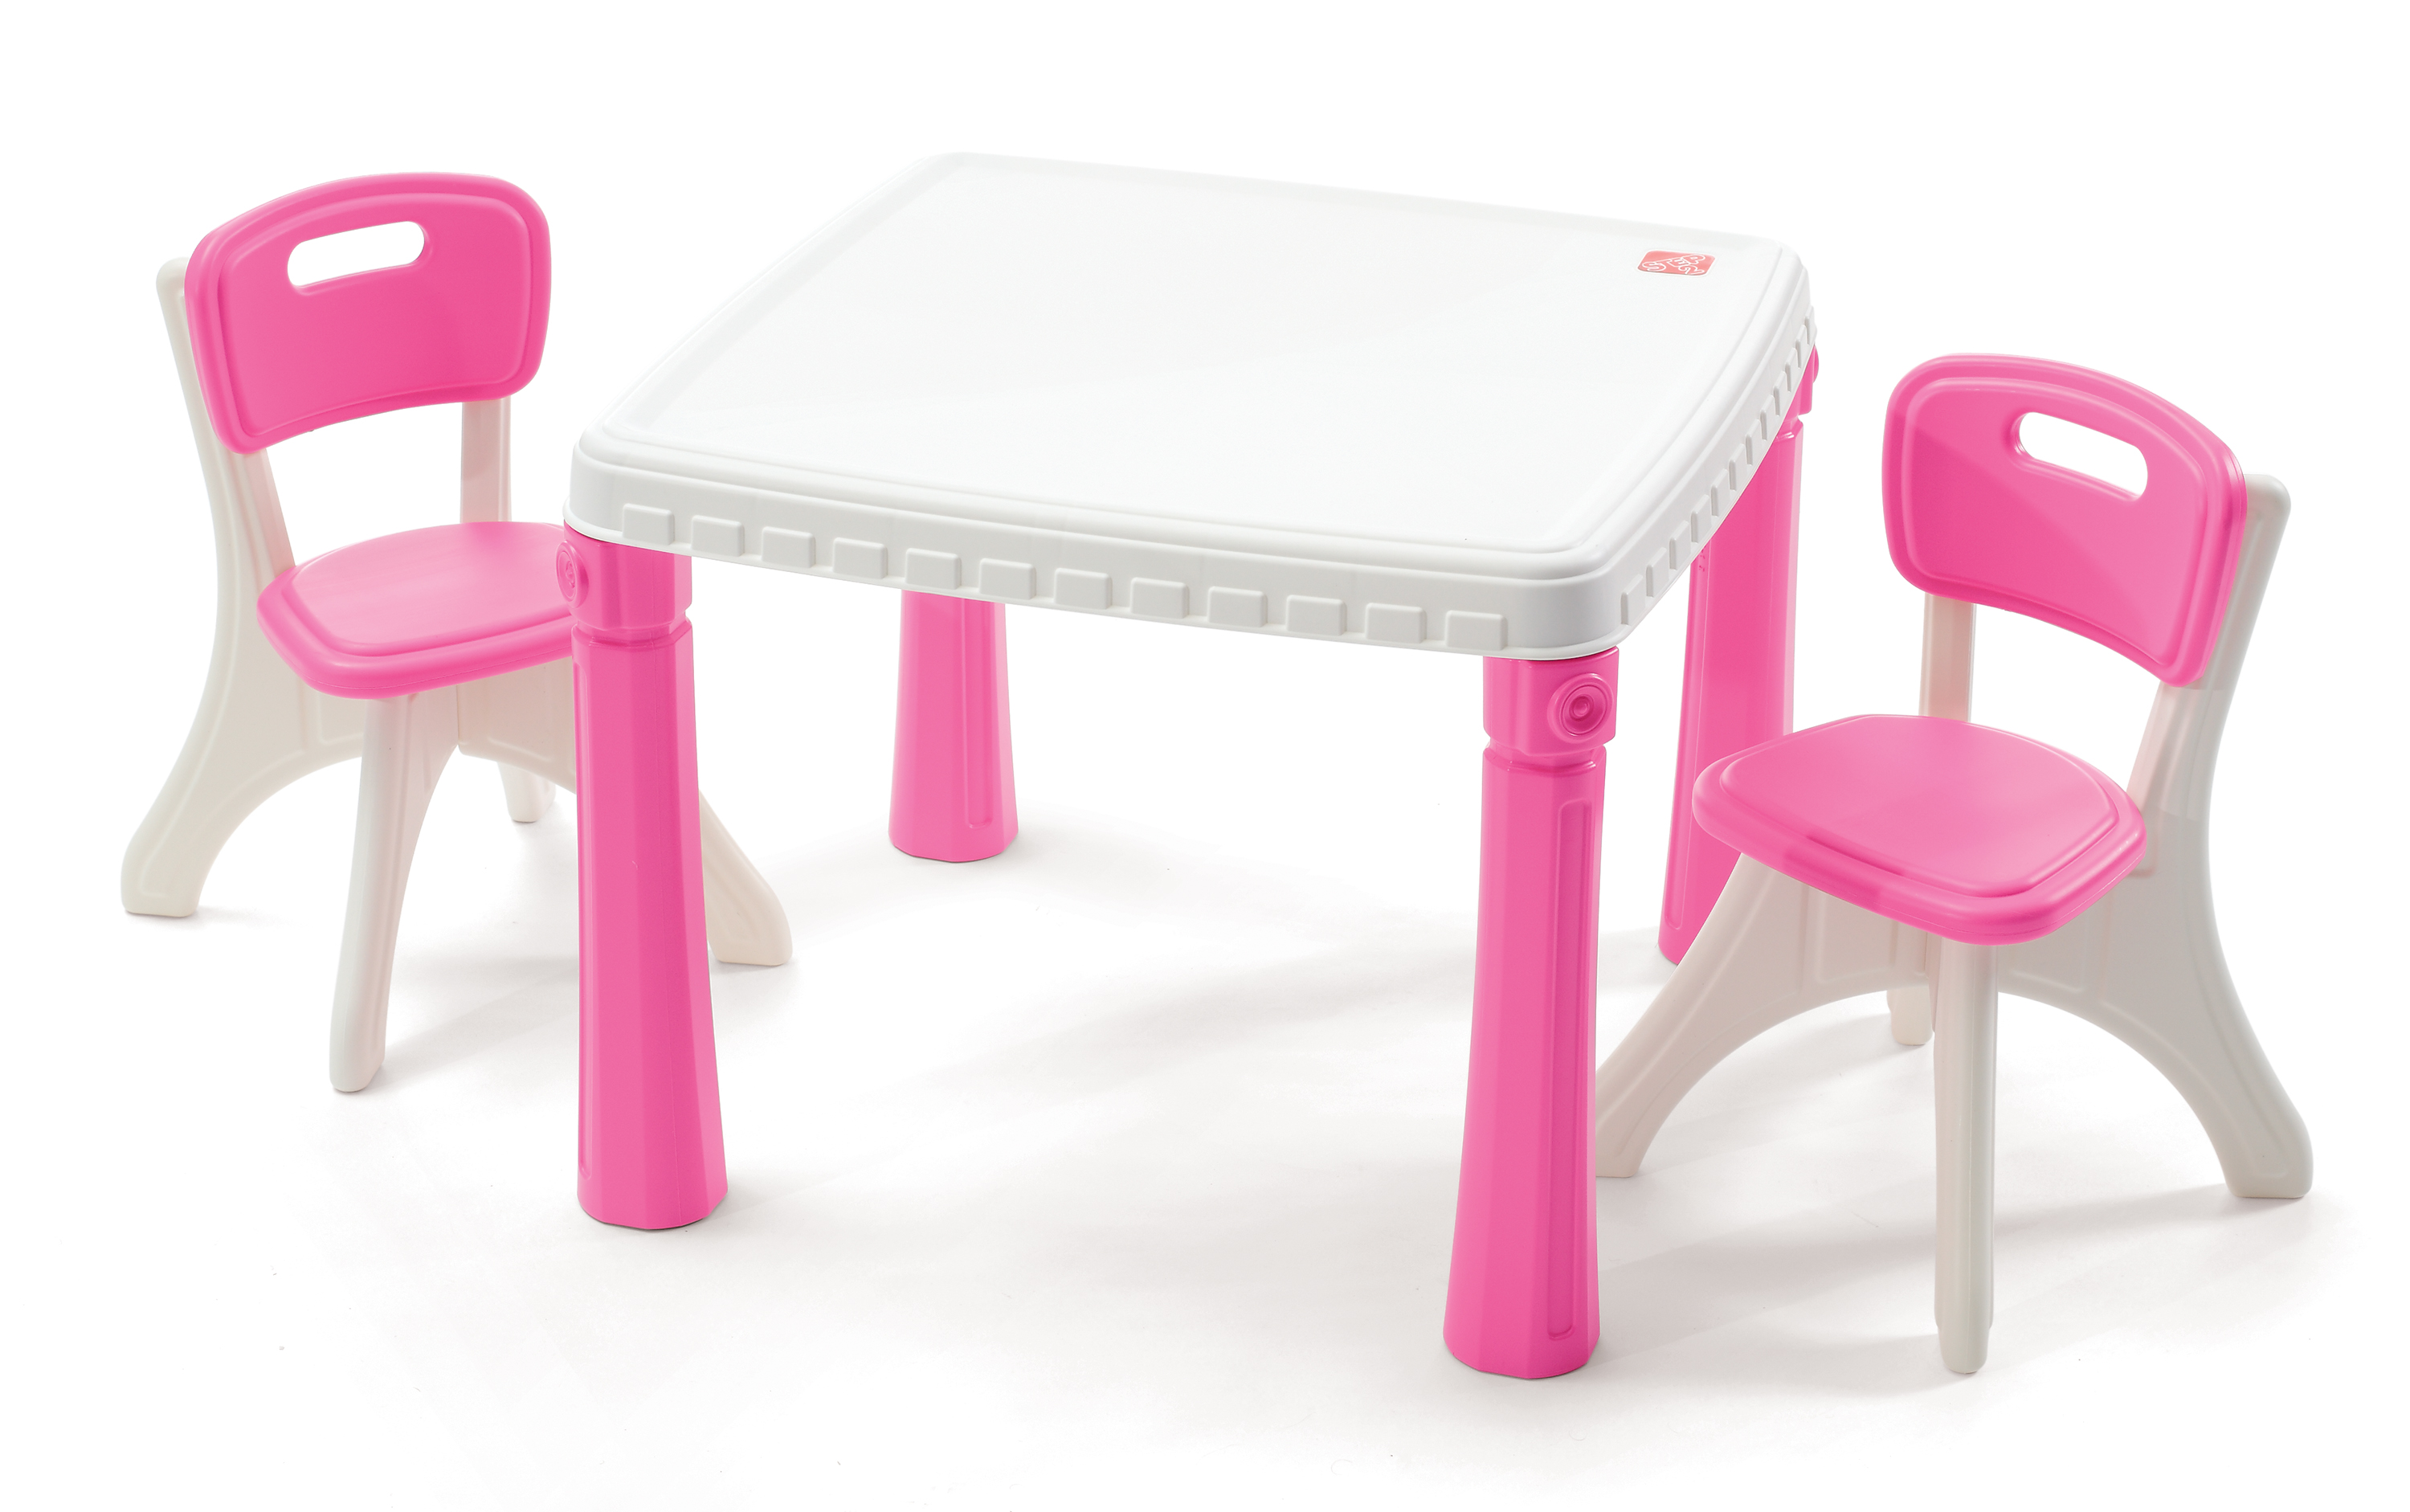 lifestyle kitchen table chairs set kitchen table chairs set Step2 LifeStyle Kitchen Table Chairs Set Pink